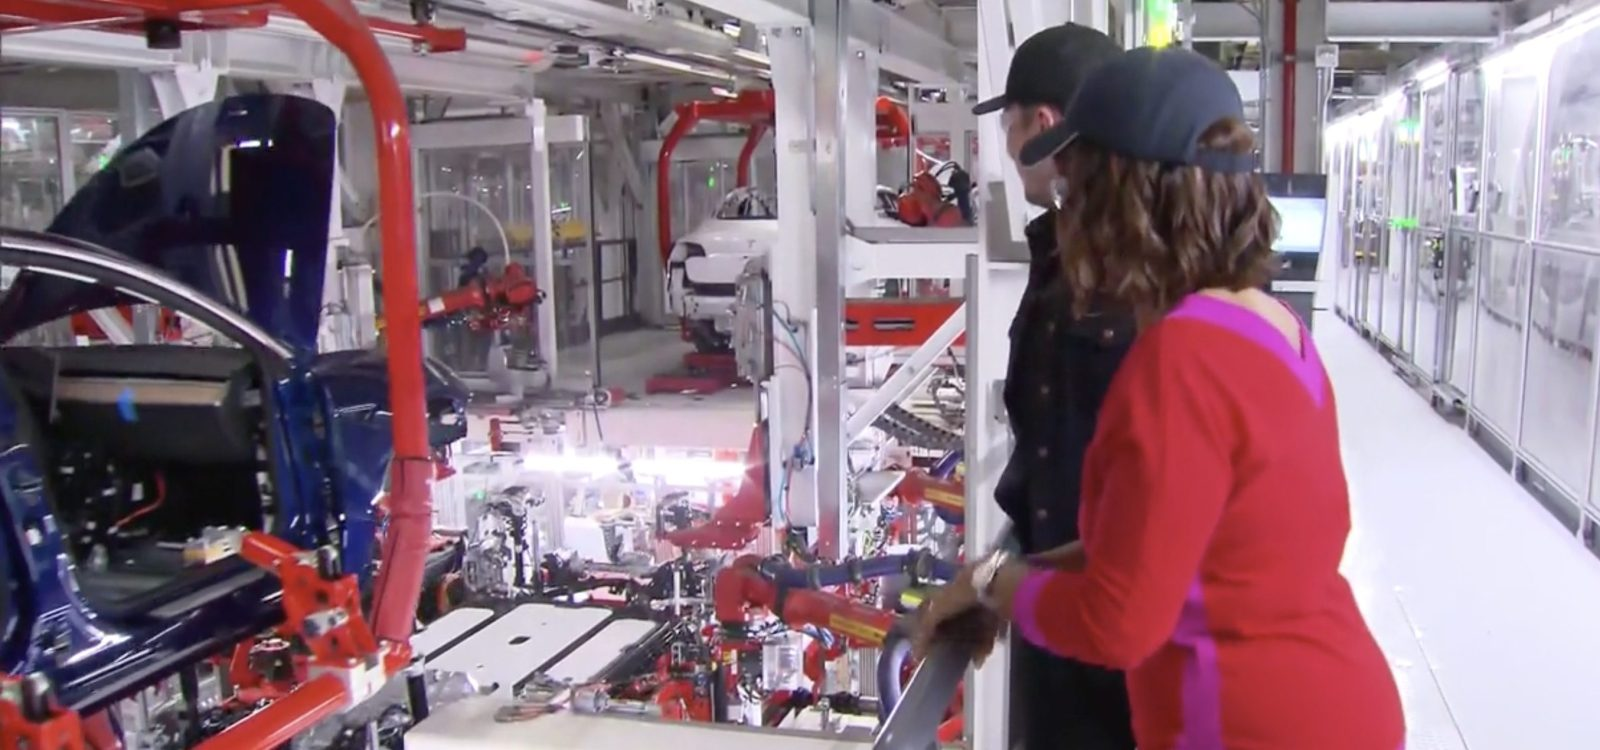 2a8c0f6c0f85b Elon Musk gives first glimpse inside Tesla Model 3 production line ...